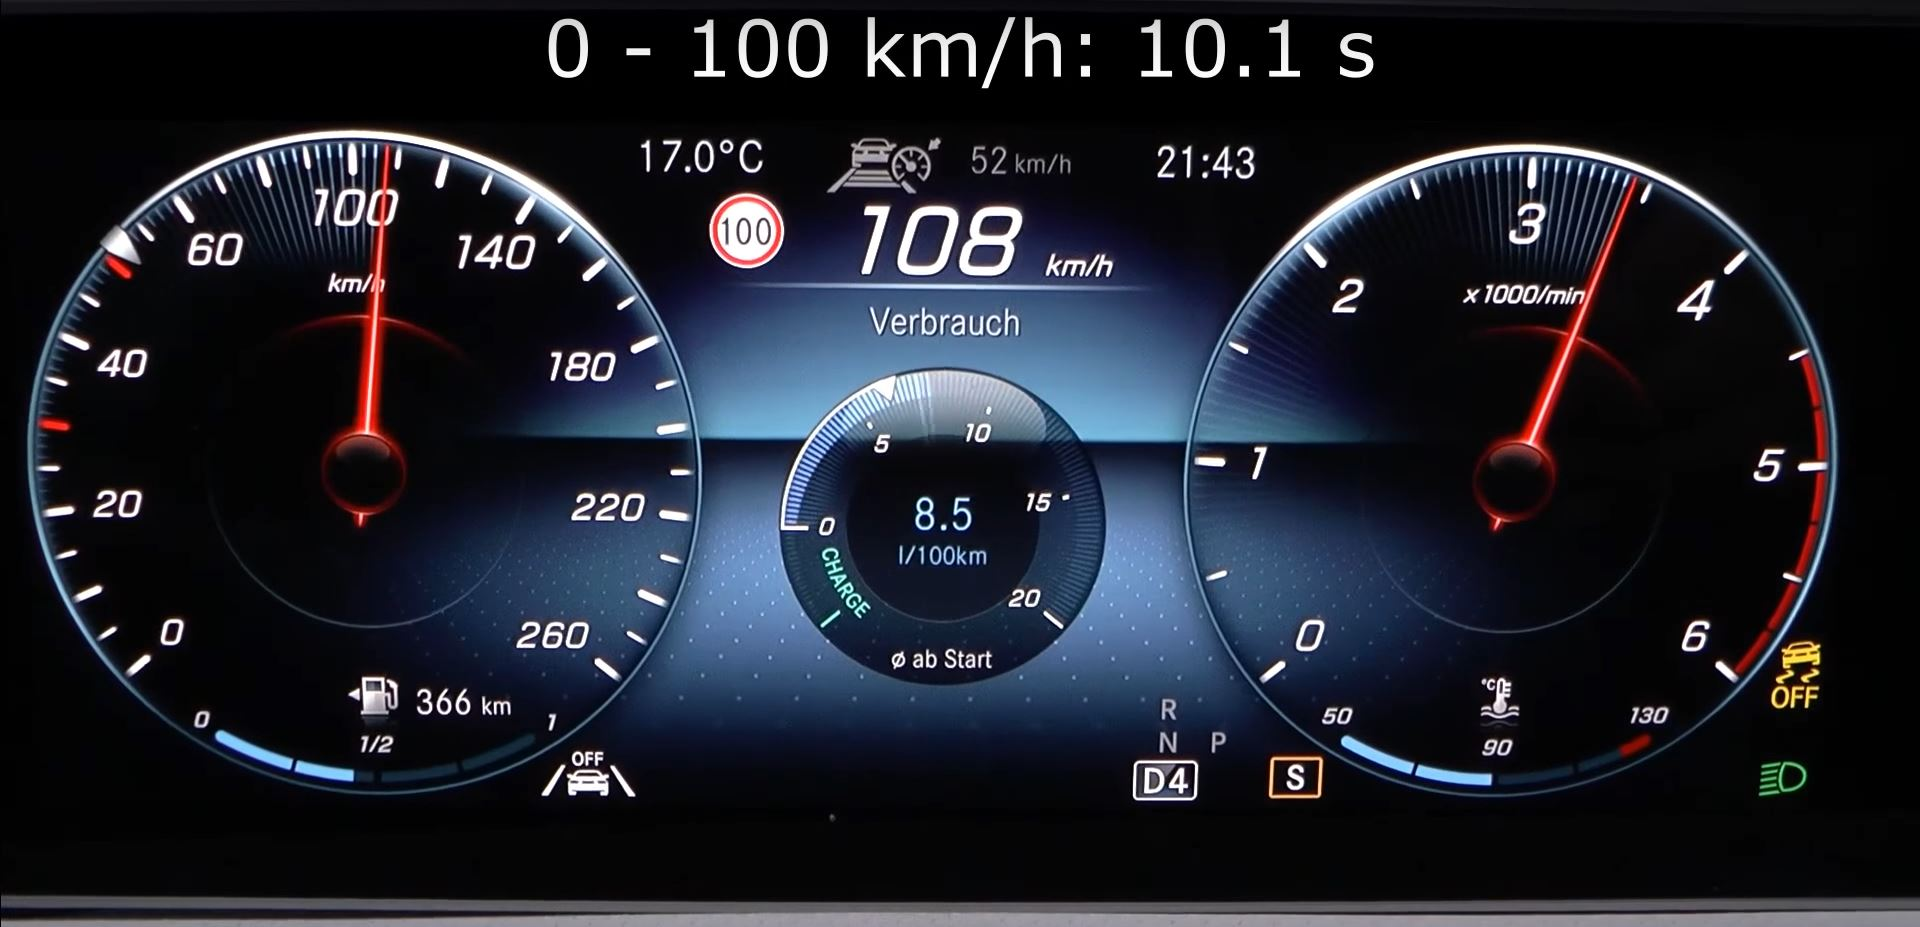 Mercedes Km 2019 Mercedes Benz A 180 D Does To 100 Km H In 10 1 Seconds